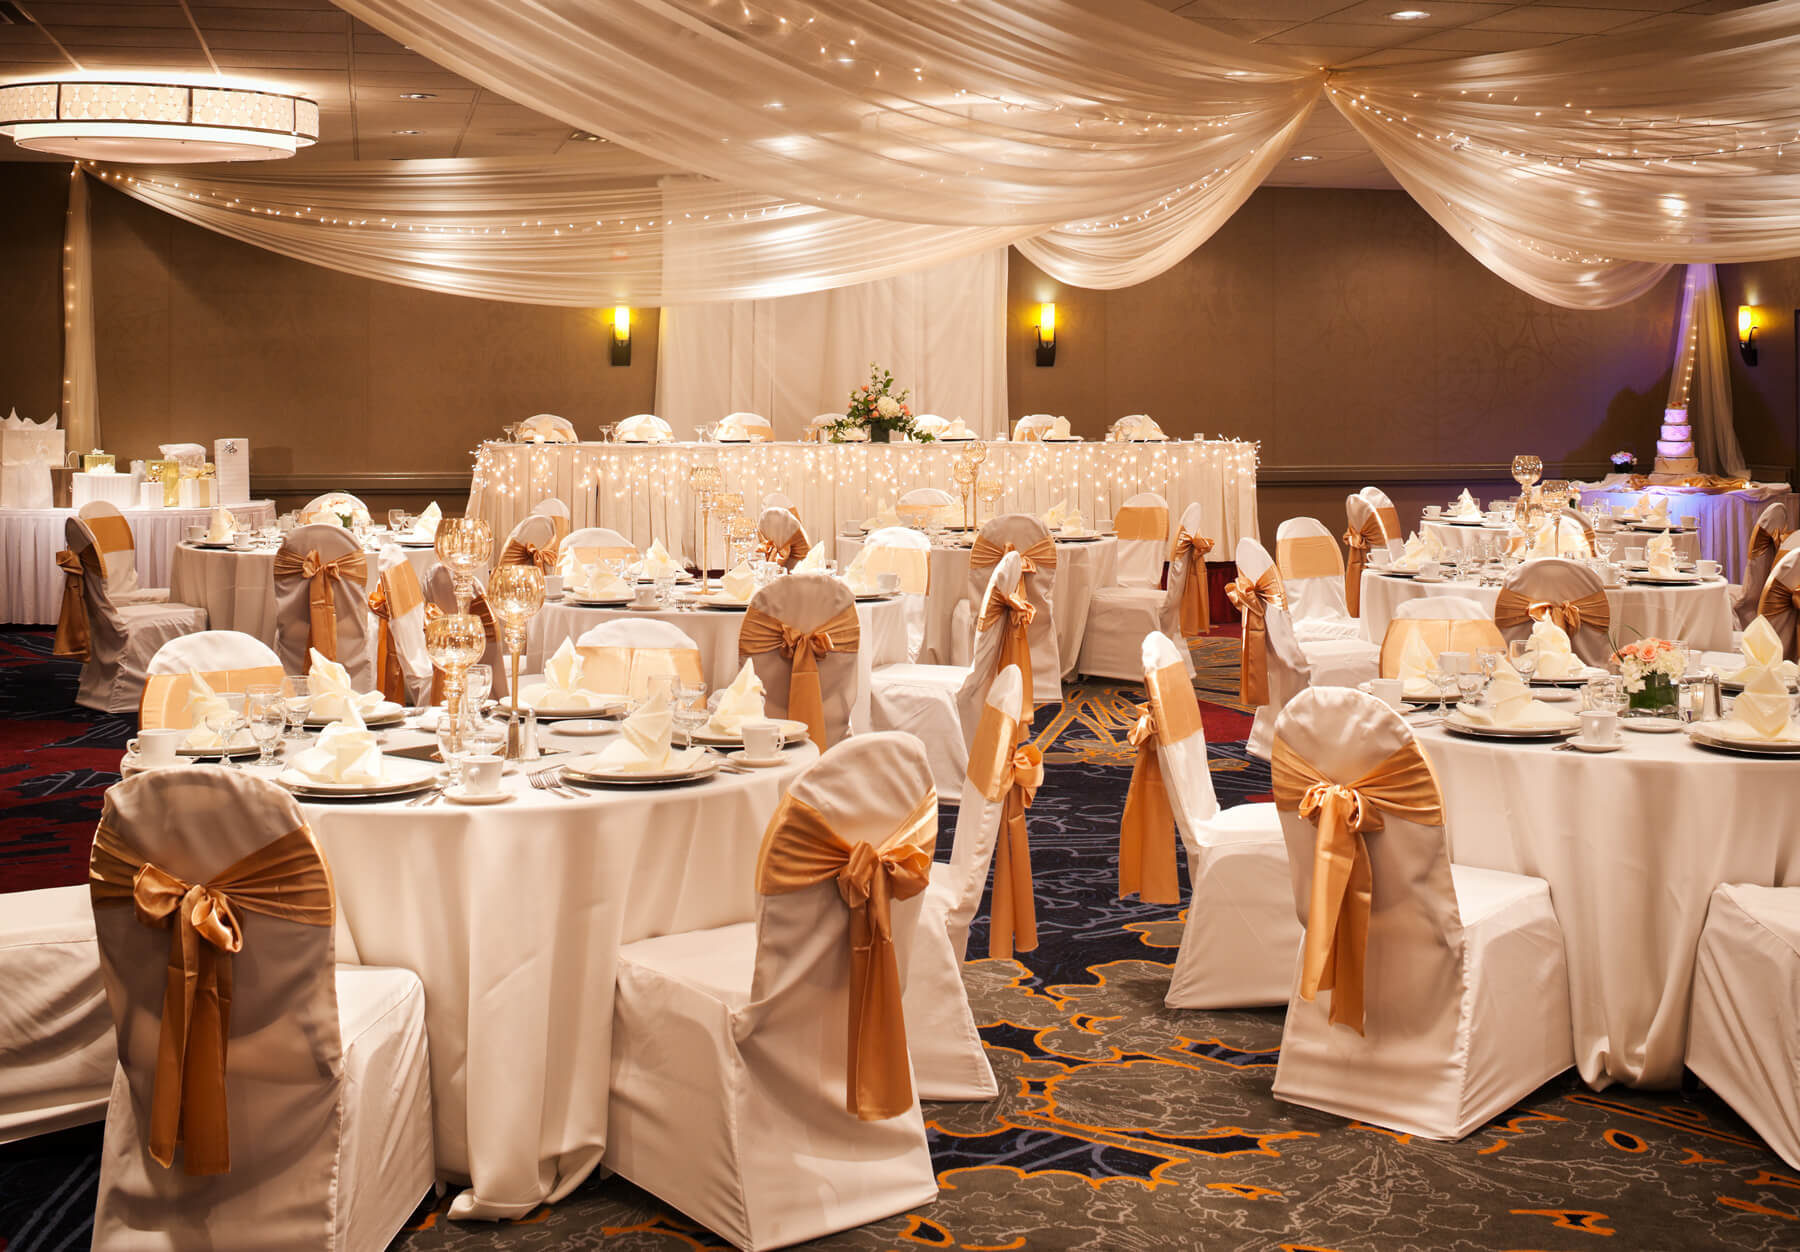 Radisson Wedding Event Space Roseville, MN